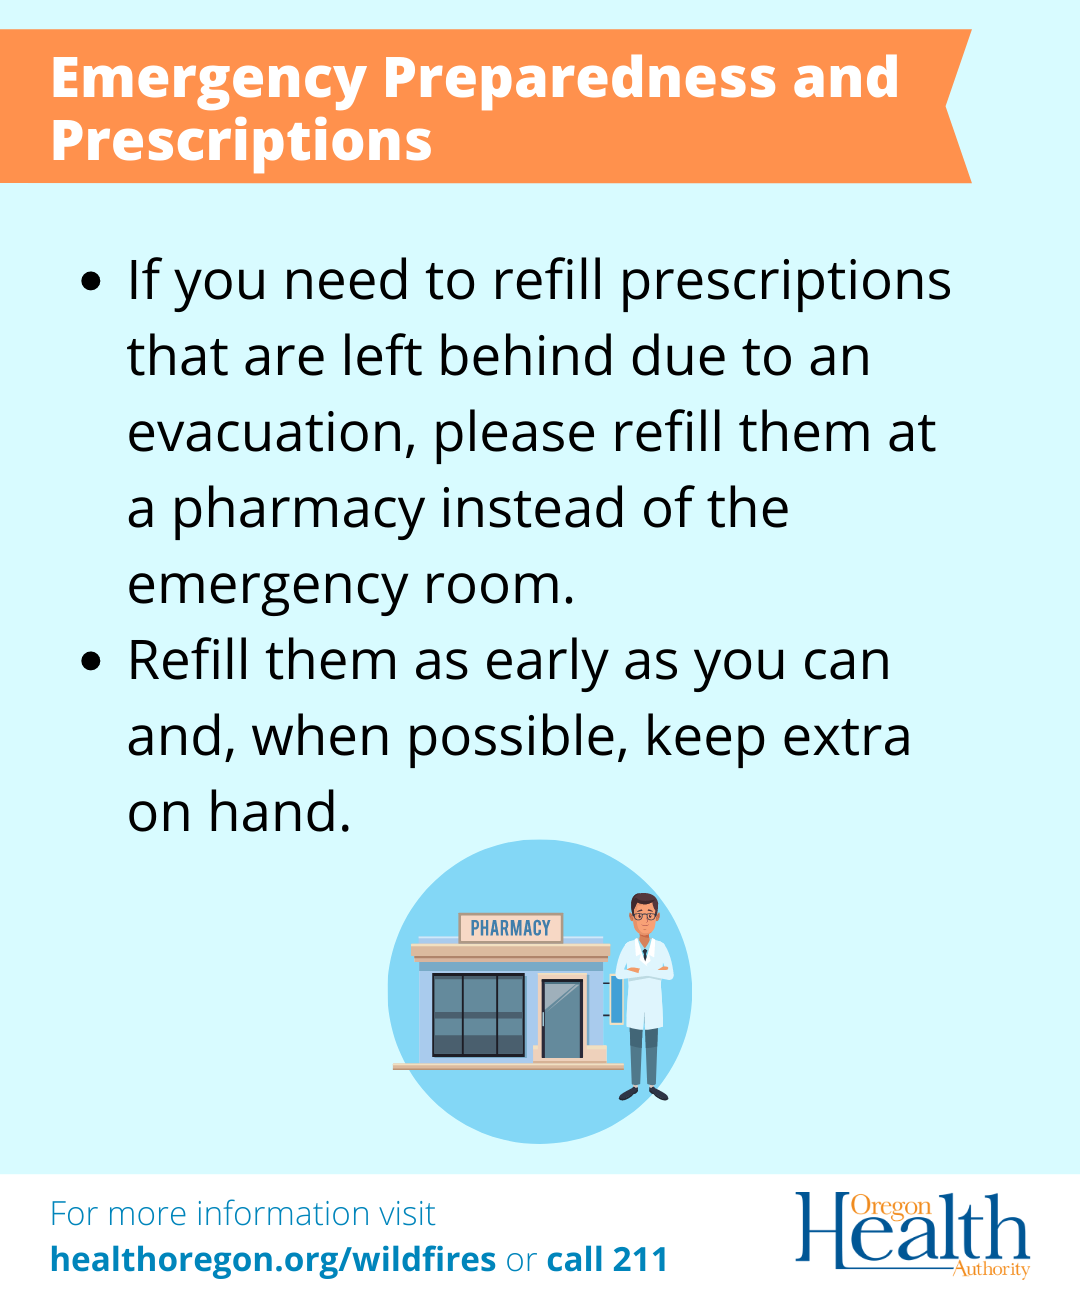 Emergency preparedness and prescriptions